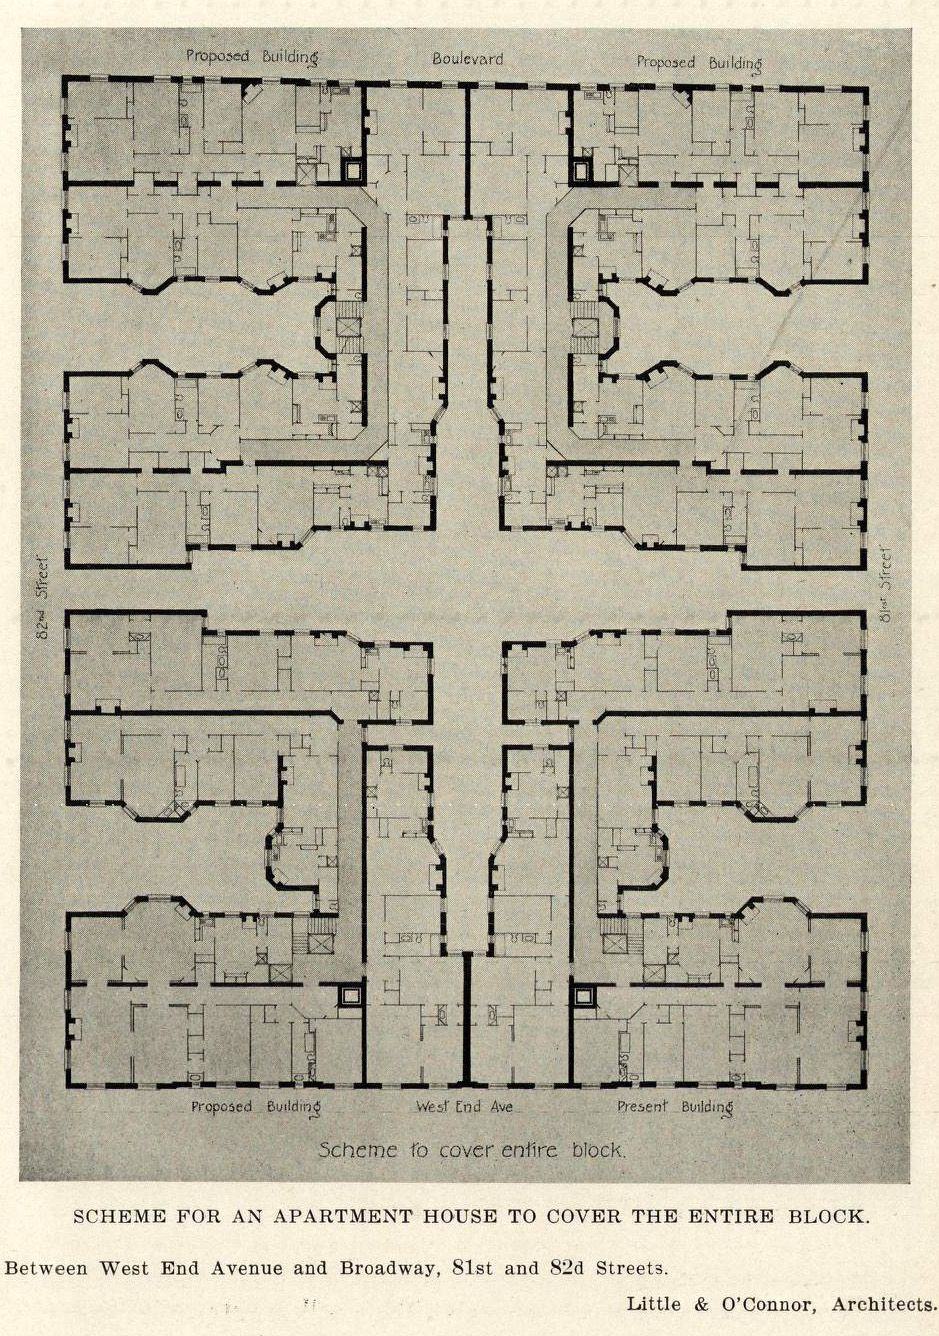 New York House Plans Inspirational Floor Plan for An Apartment Building New York City Archi